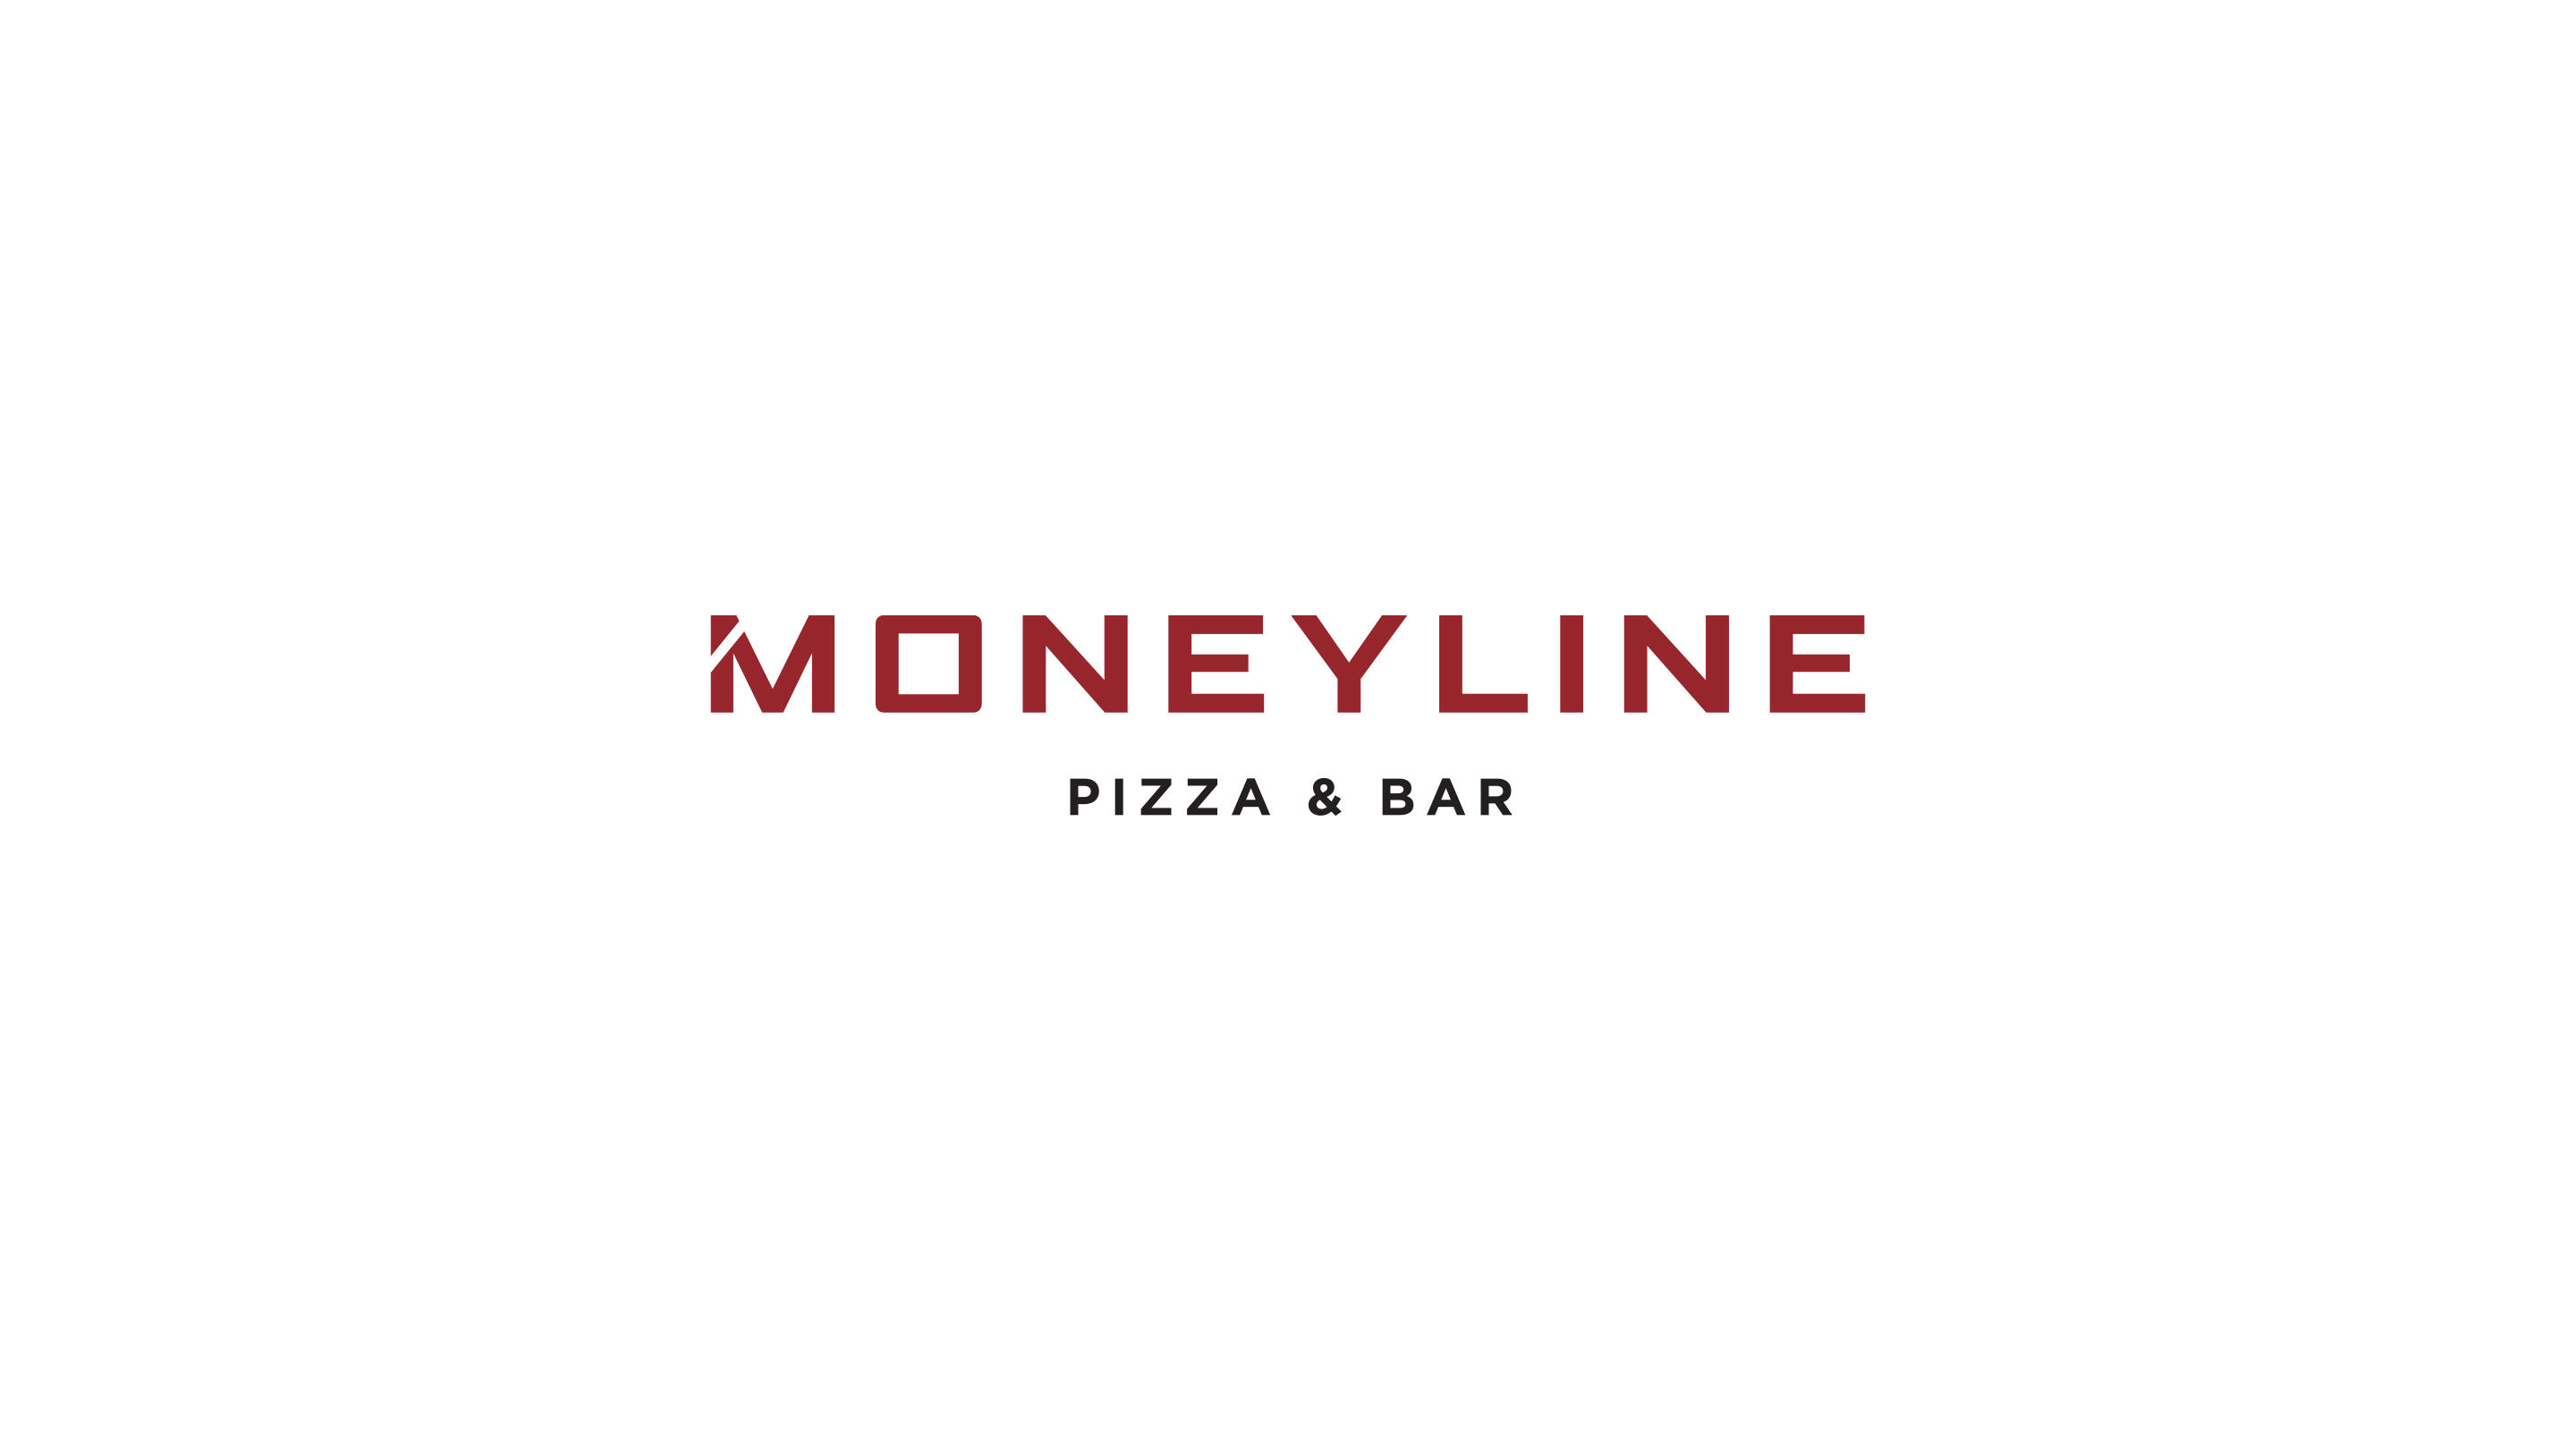 The logo for Moneyline Pizza & Bar.